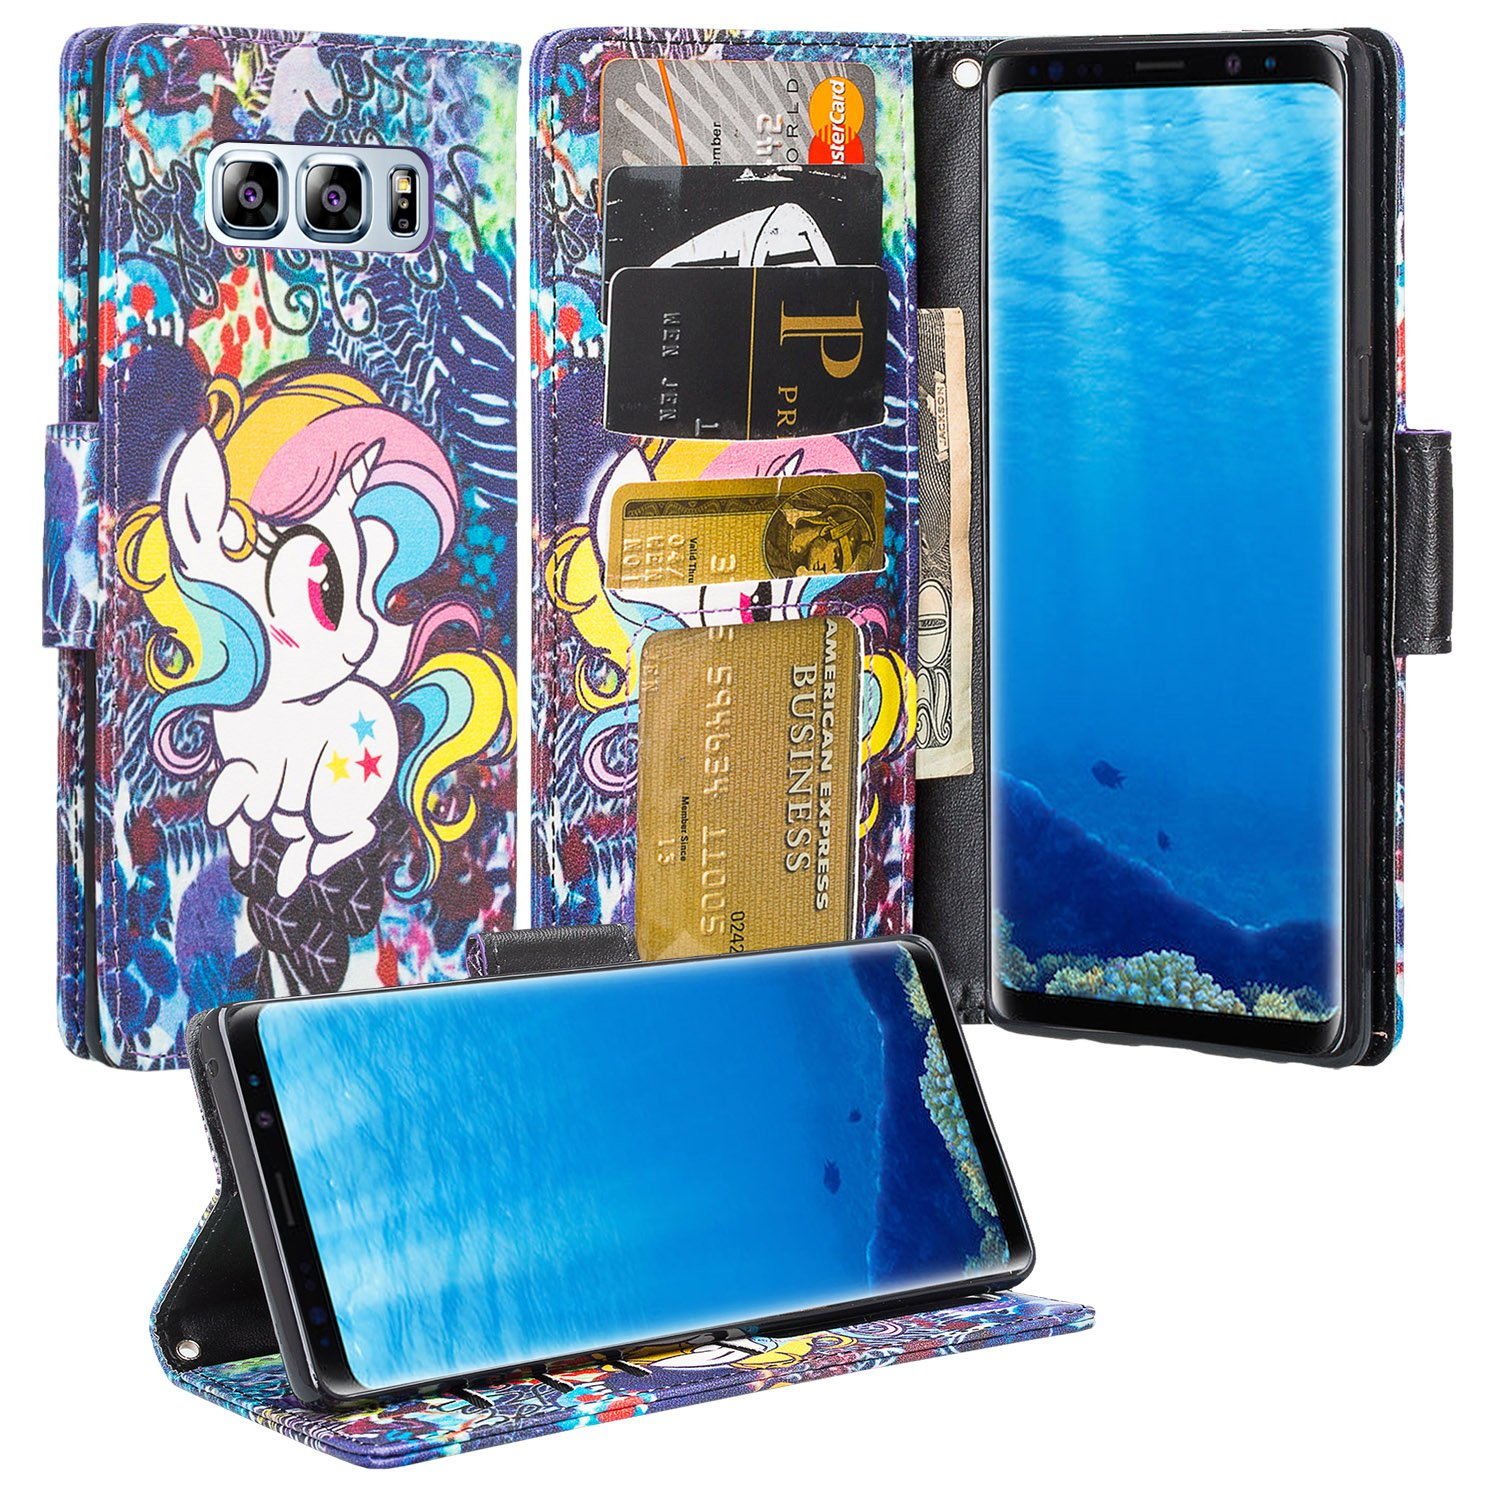 Samsung Galaxy Note 8 Case, Faux Leather Wallet Case Combo, Tempered Glass Screen Protector, Kickstand Wrist Strap Wallet Cover - Rainbow Unicorn